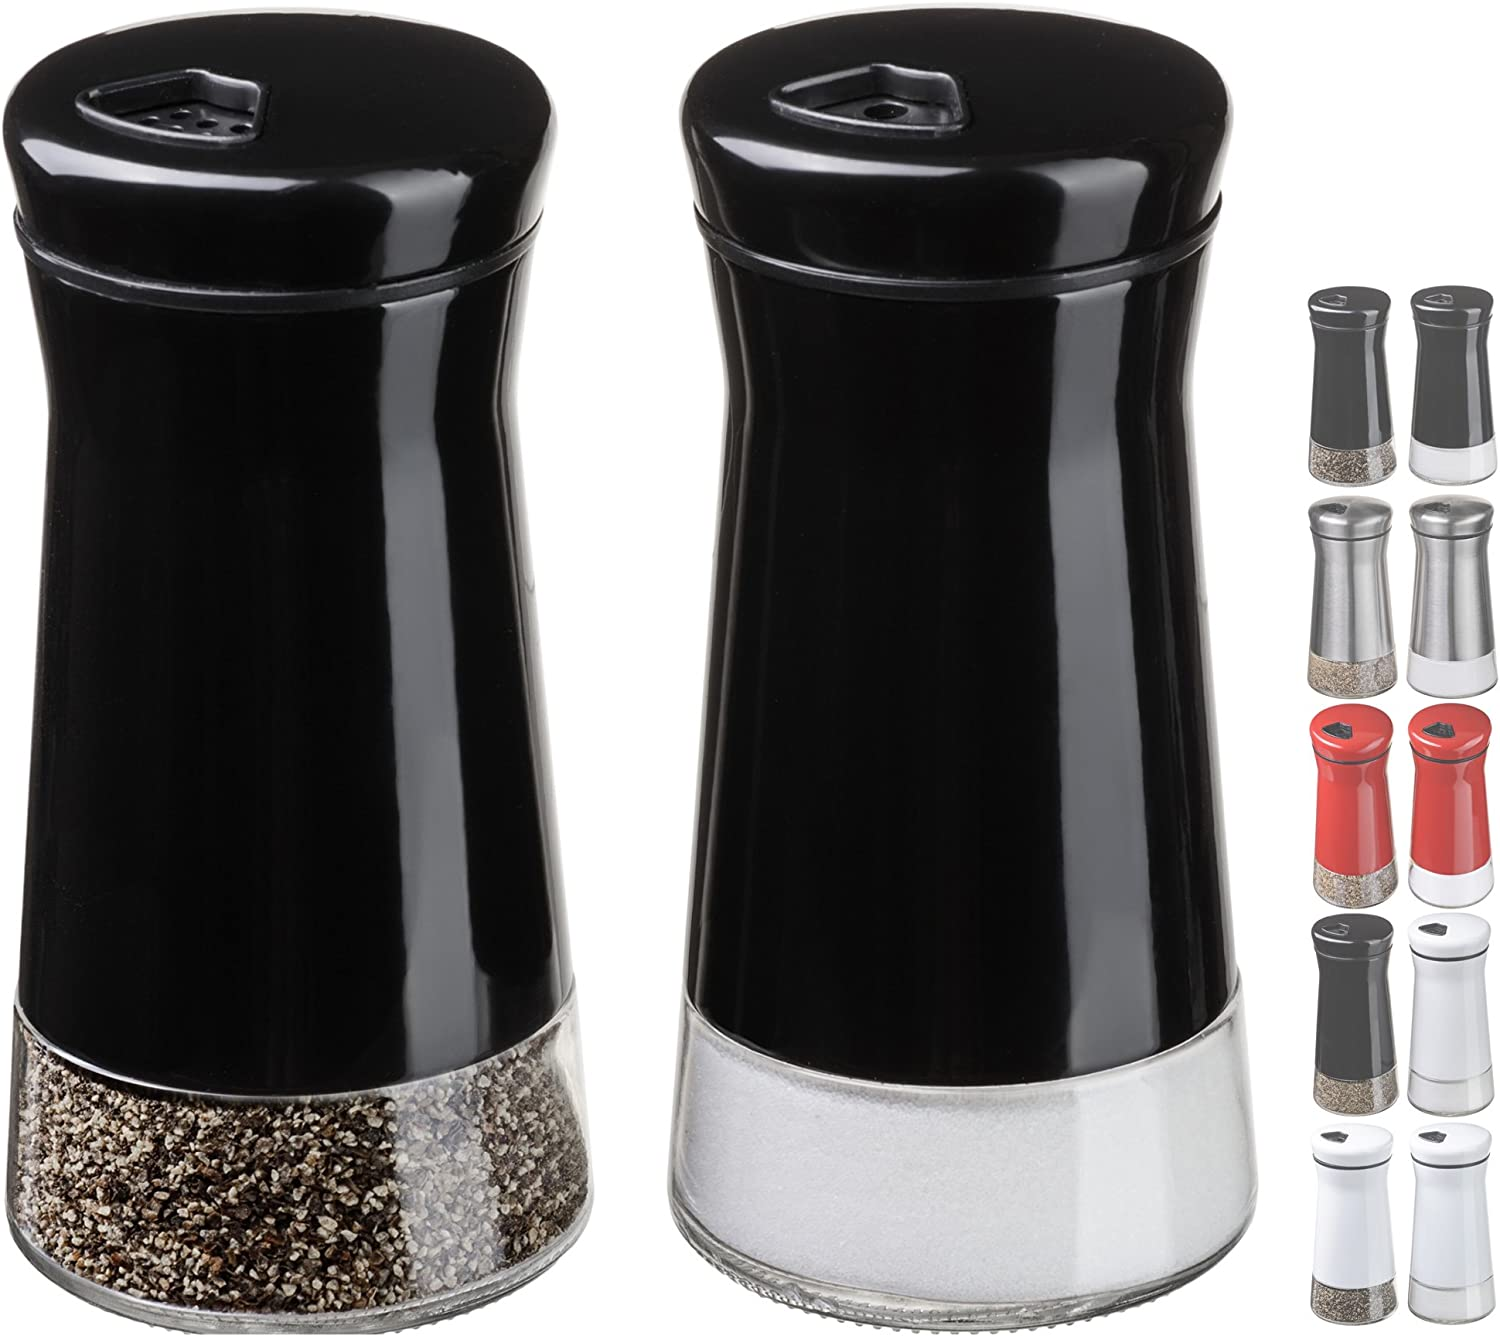 Amazon Com Chefvantage Salt And Pepper Shakers Set With Adjustable Holes Black Kitchen Dining